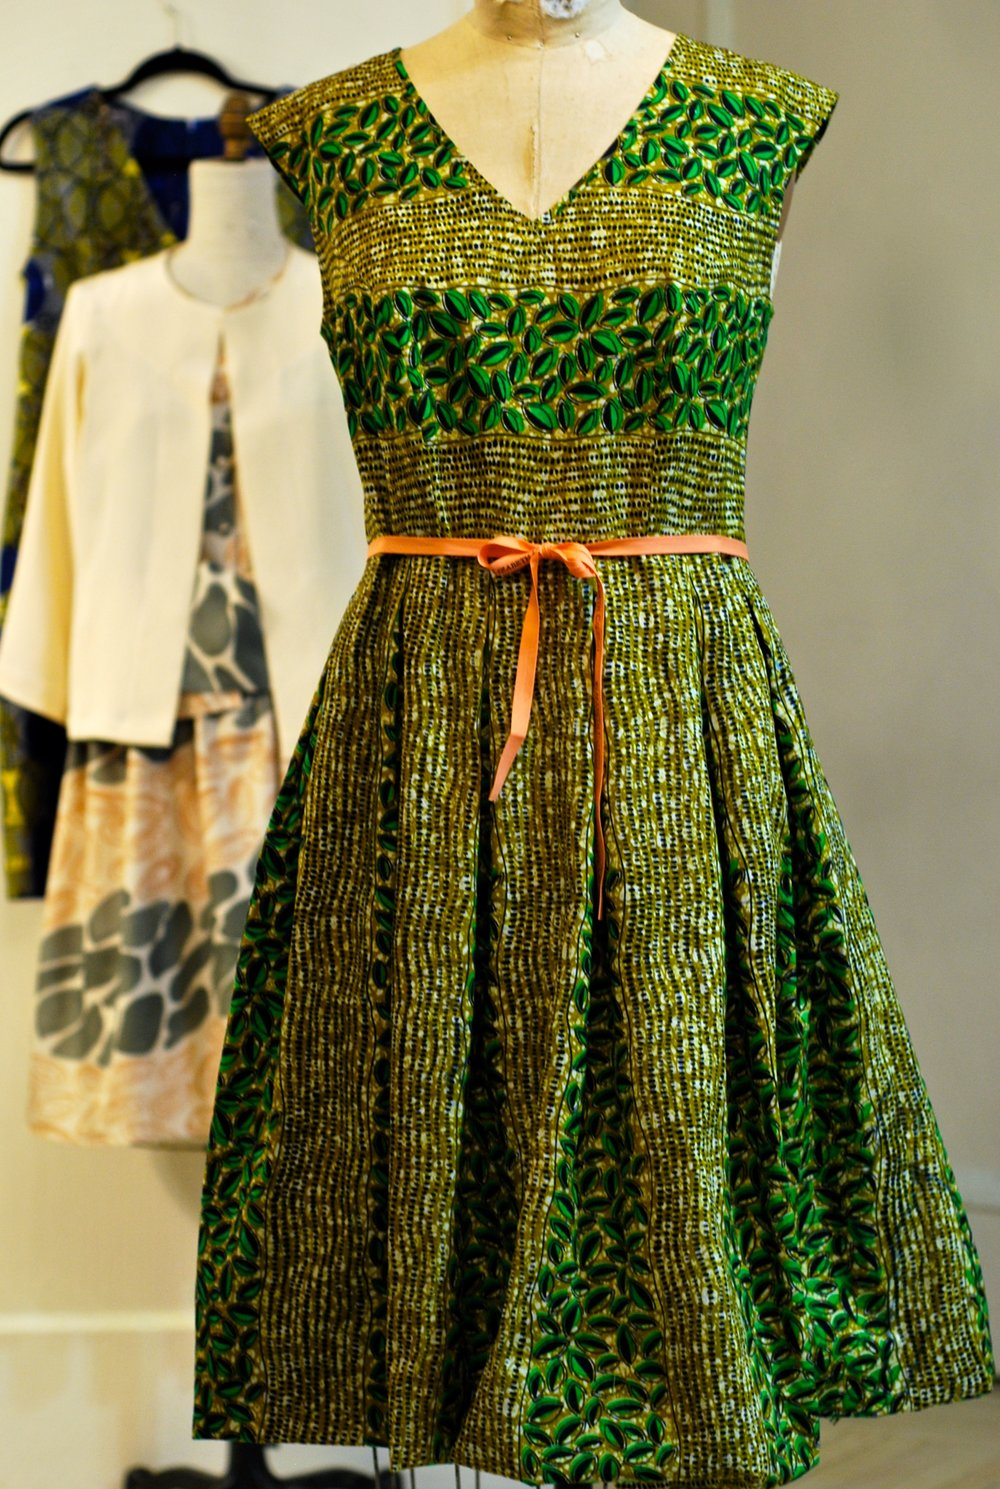 green leaf dress.jpg